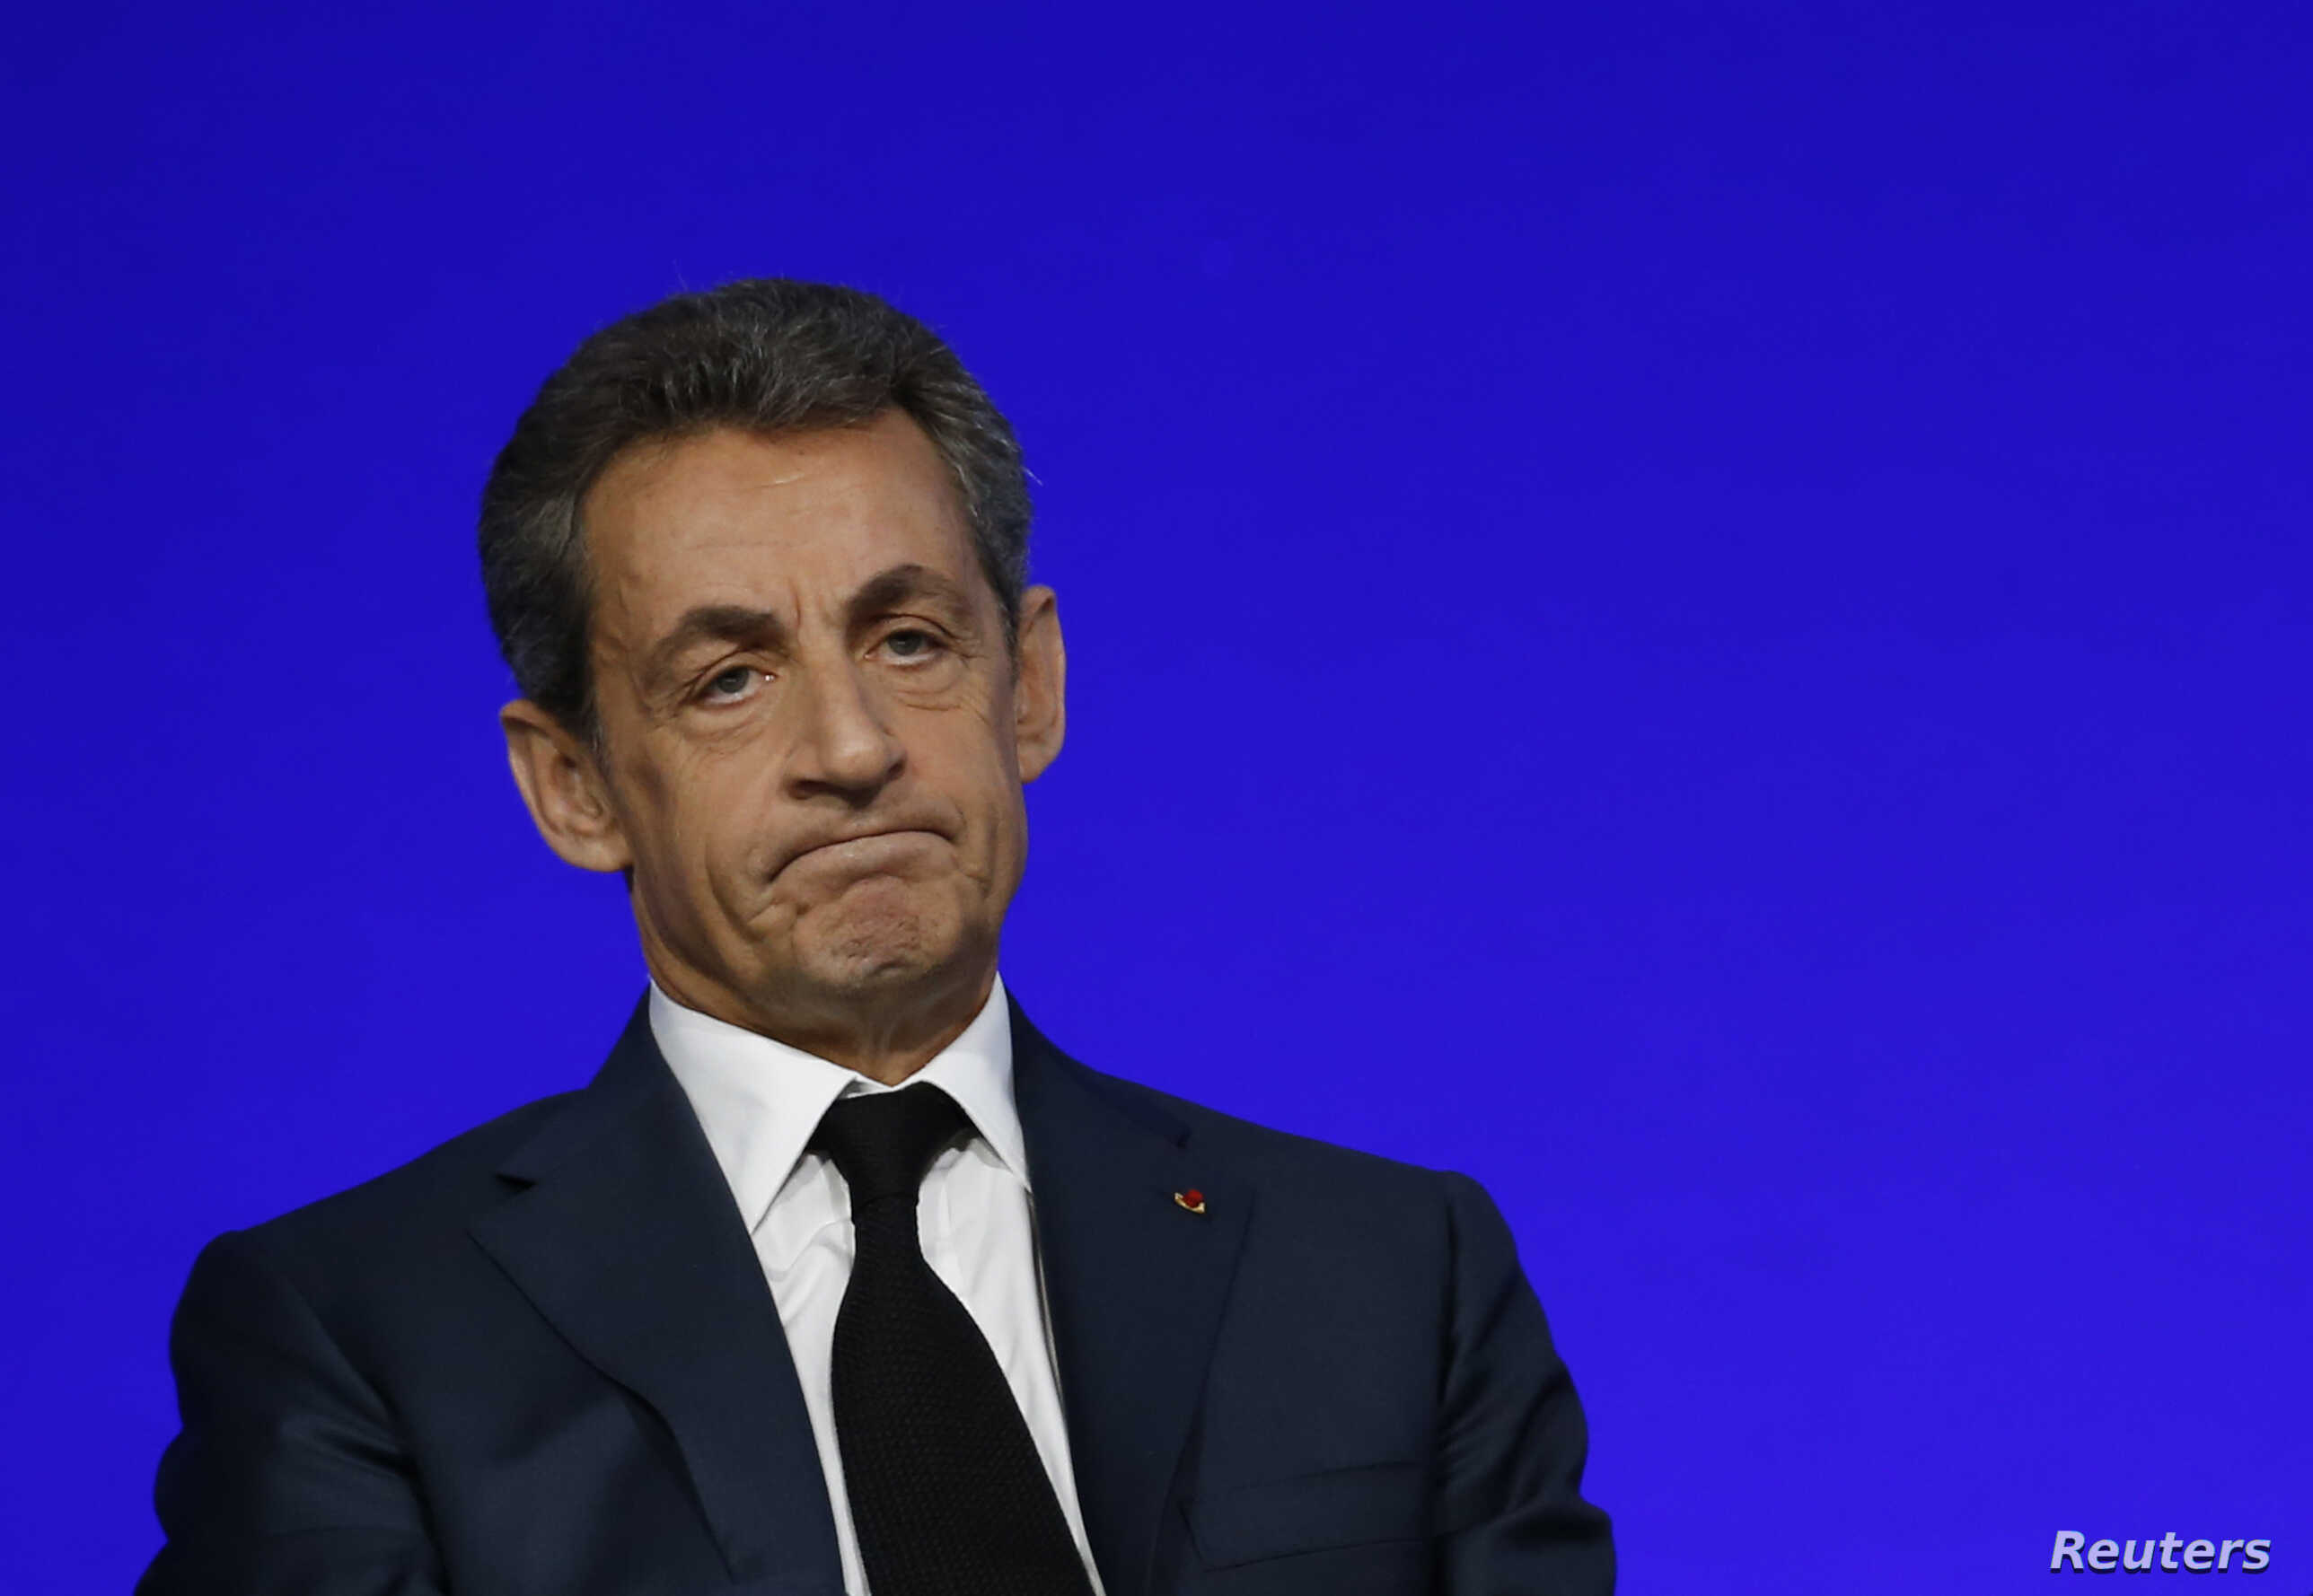 Nicolas Sarkozy, head of France's Les Republicains political party and former French President, speaks on the second day of his party's national council in Paris, France, Feb. 14, 2016.